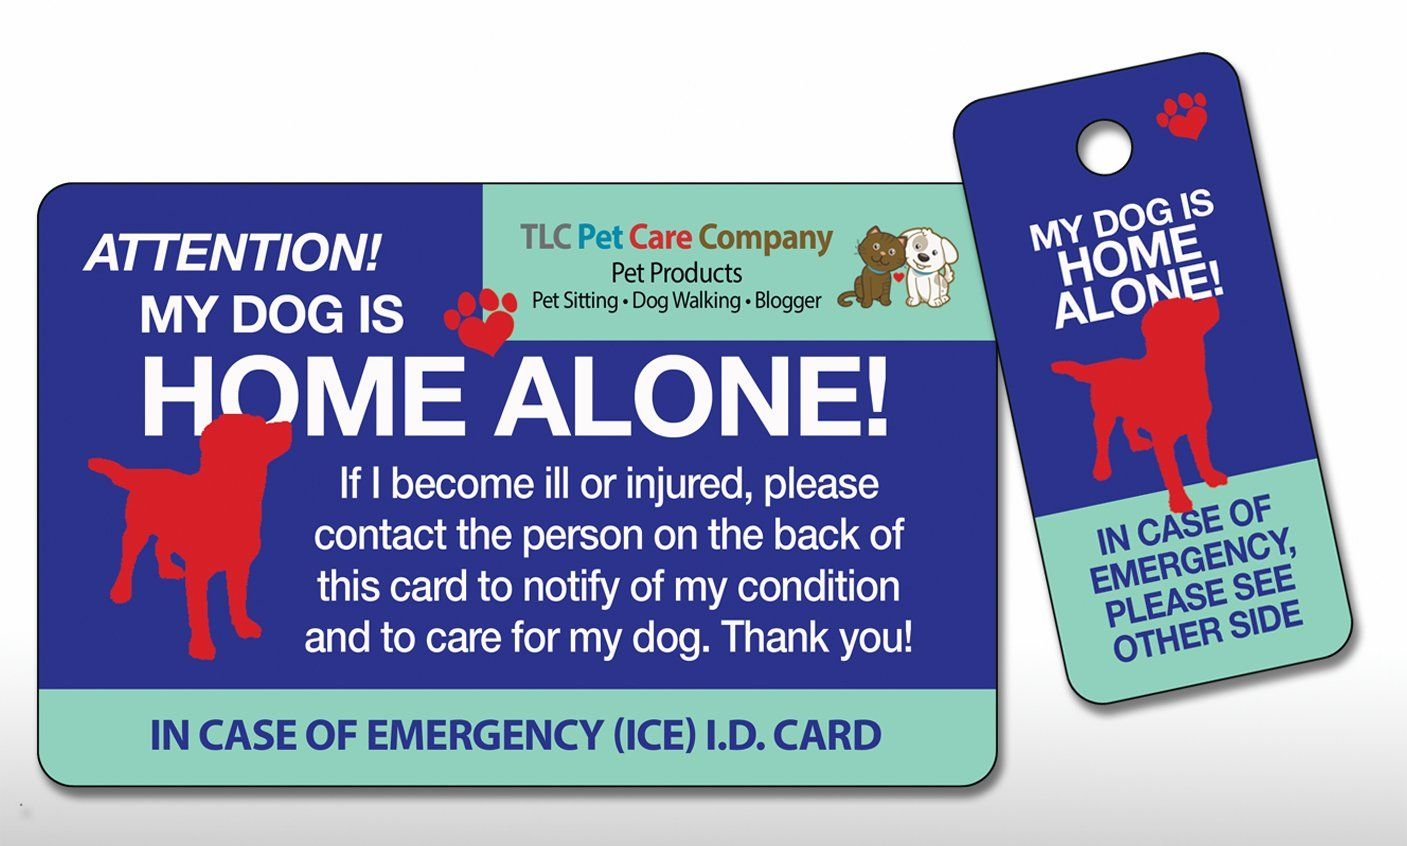 My Dog Is Home Alone Pet Alert Emergency Ice Id Plastic Wallet Card And Keytag Qty 1 Wonderful Of You To Have Dropped By To S Pets Pet Emergency Emergency